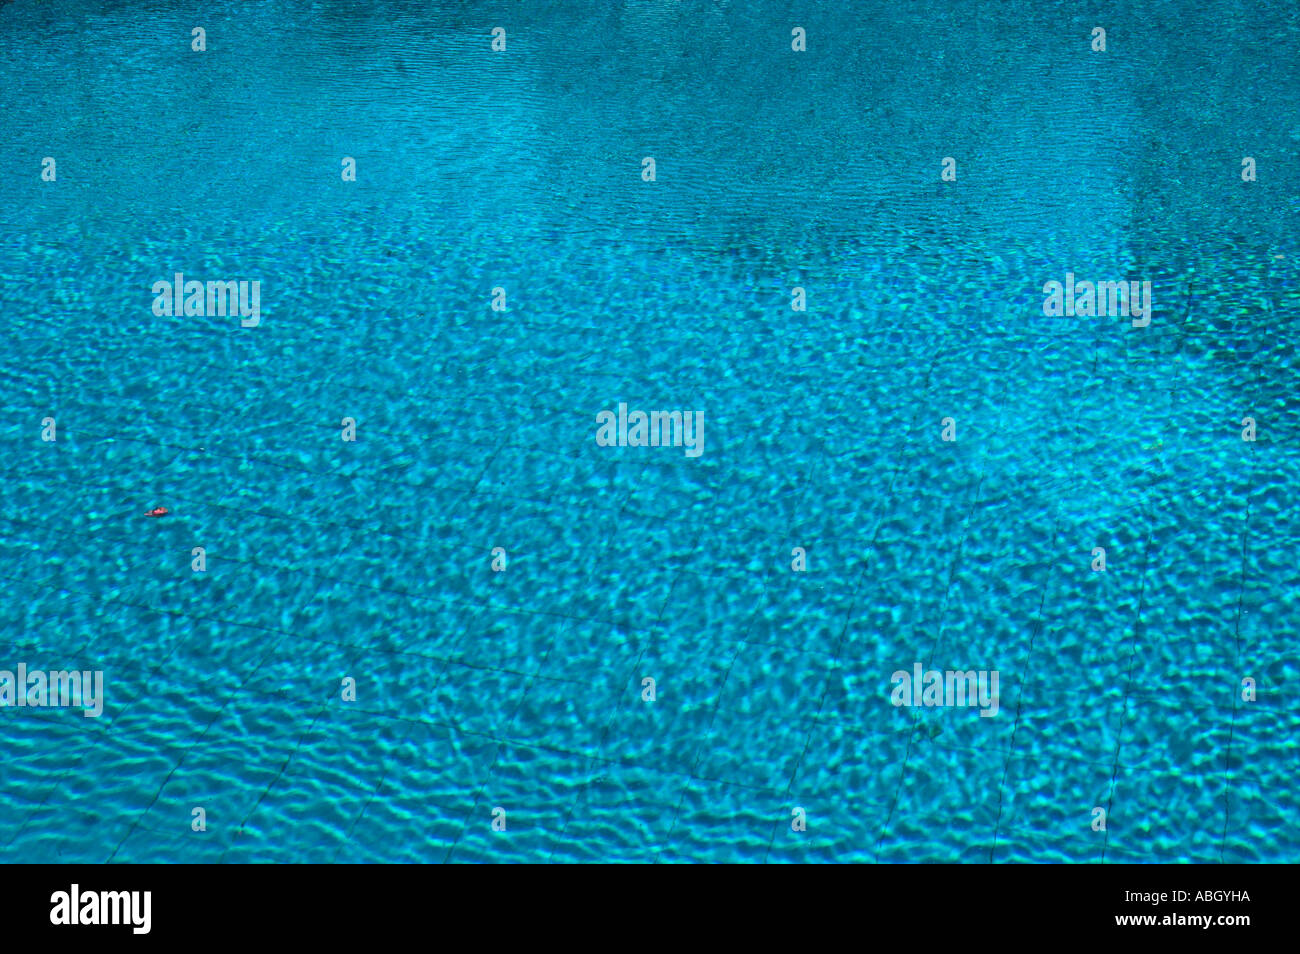 Blue water with ripples in swimming pool stock photo royalty free image 7366745 alamy for Why is swimming pool water blue